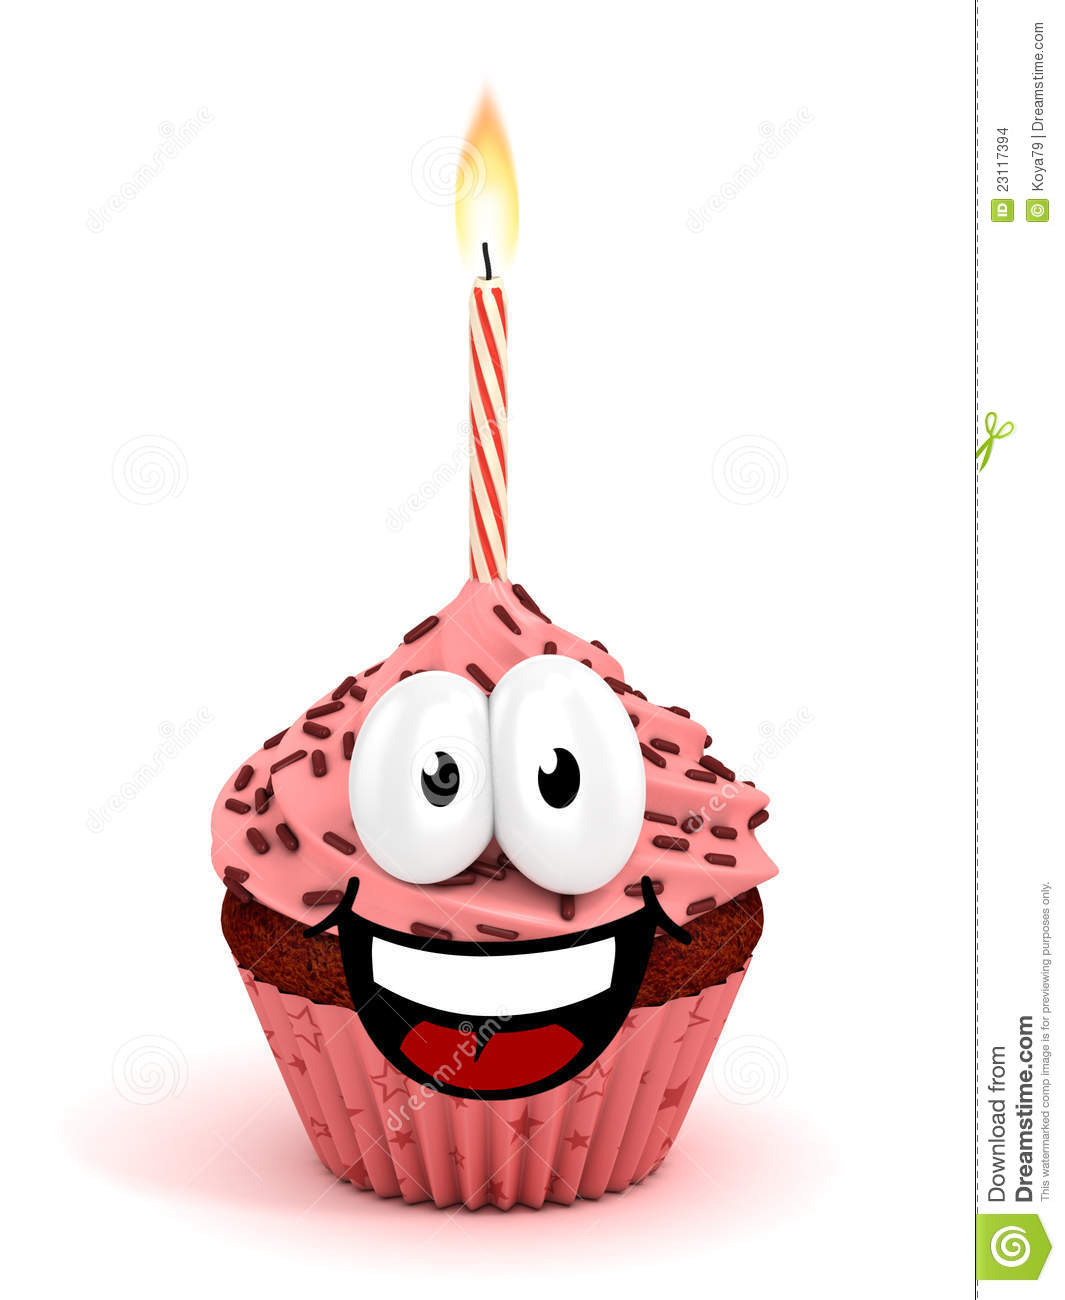 Funny Cartoon Like Cupcake 3d Rendering Stock Illustration